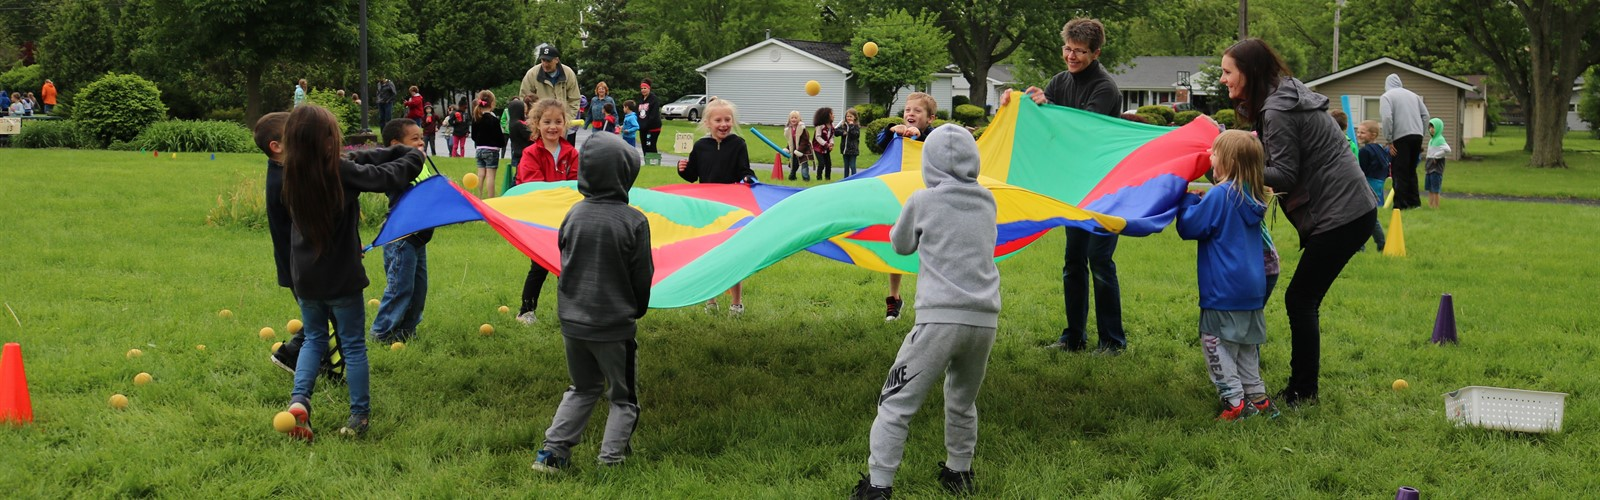 ECC students playing with a parachute during field day